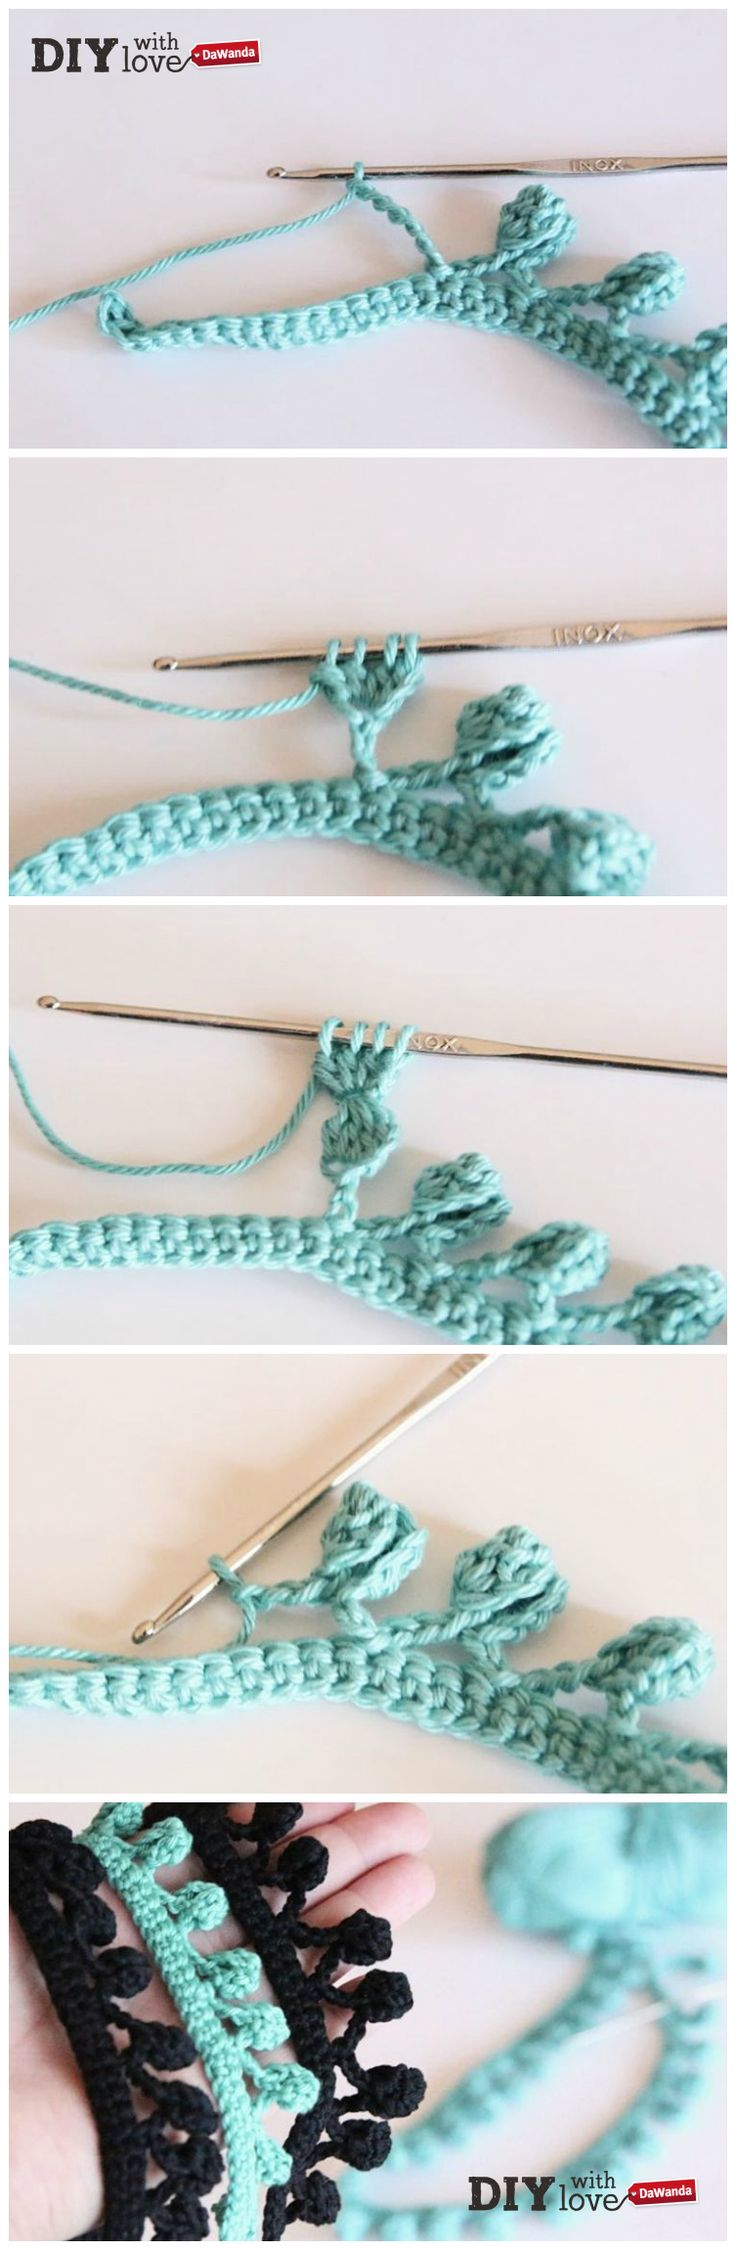 49 best adornos bolsos images on Pinterest | Knits, Crocheted bags ...